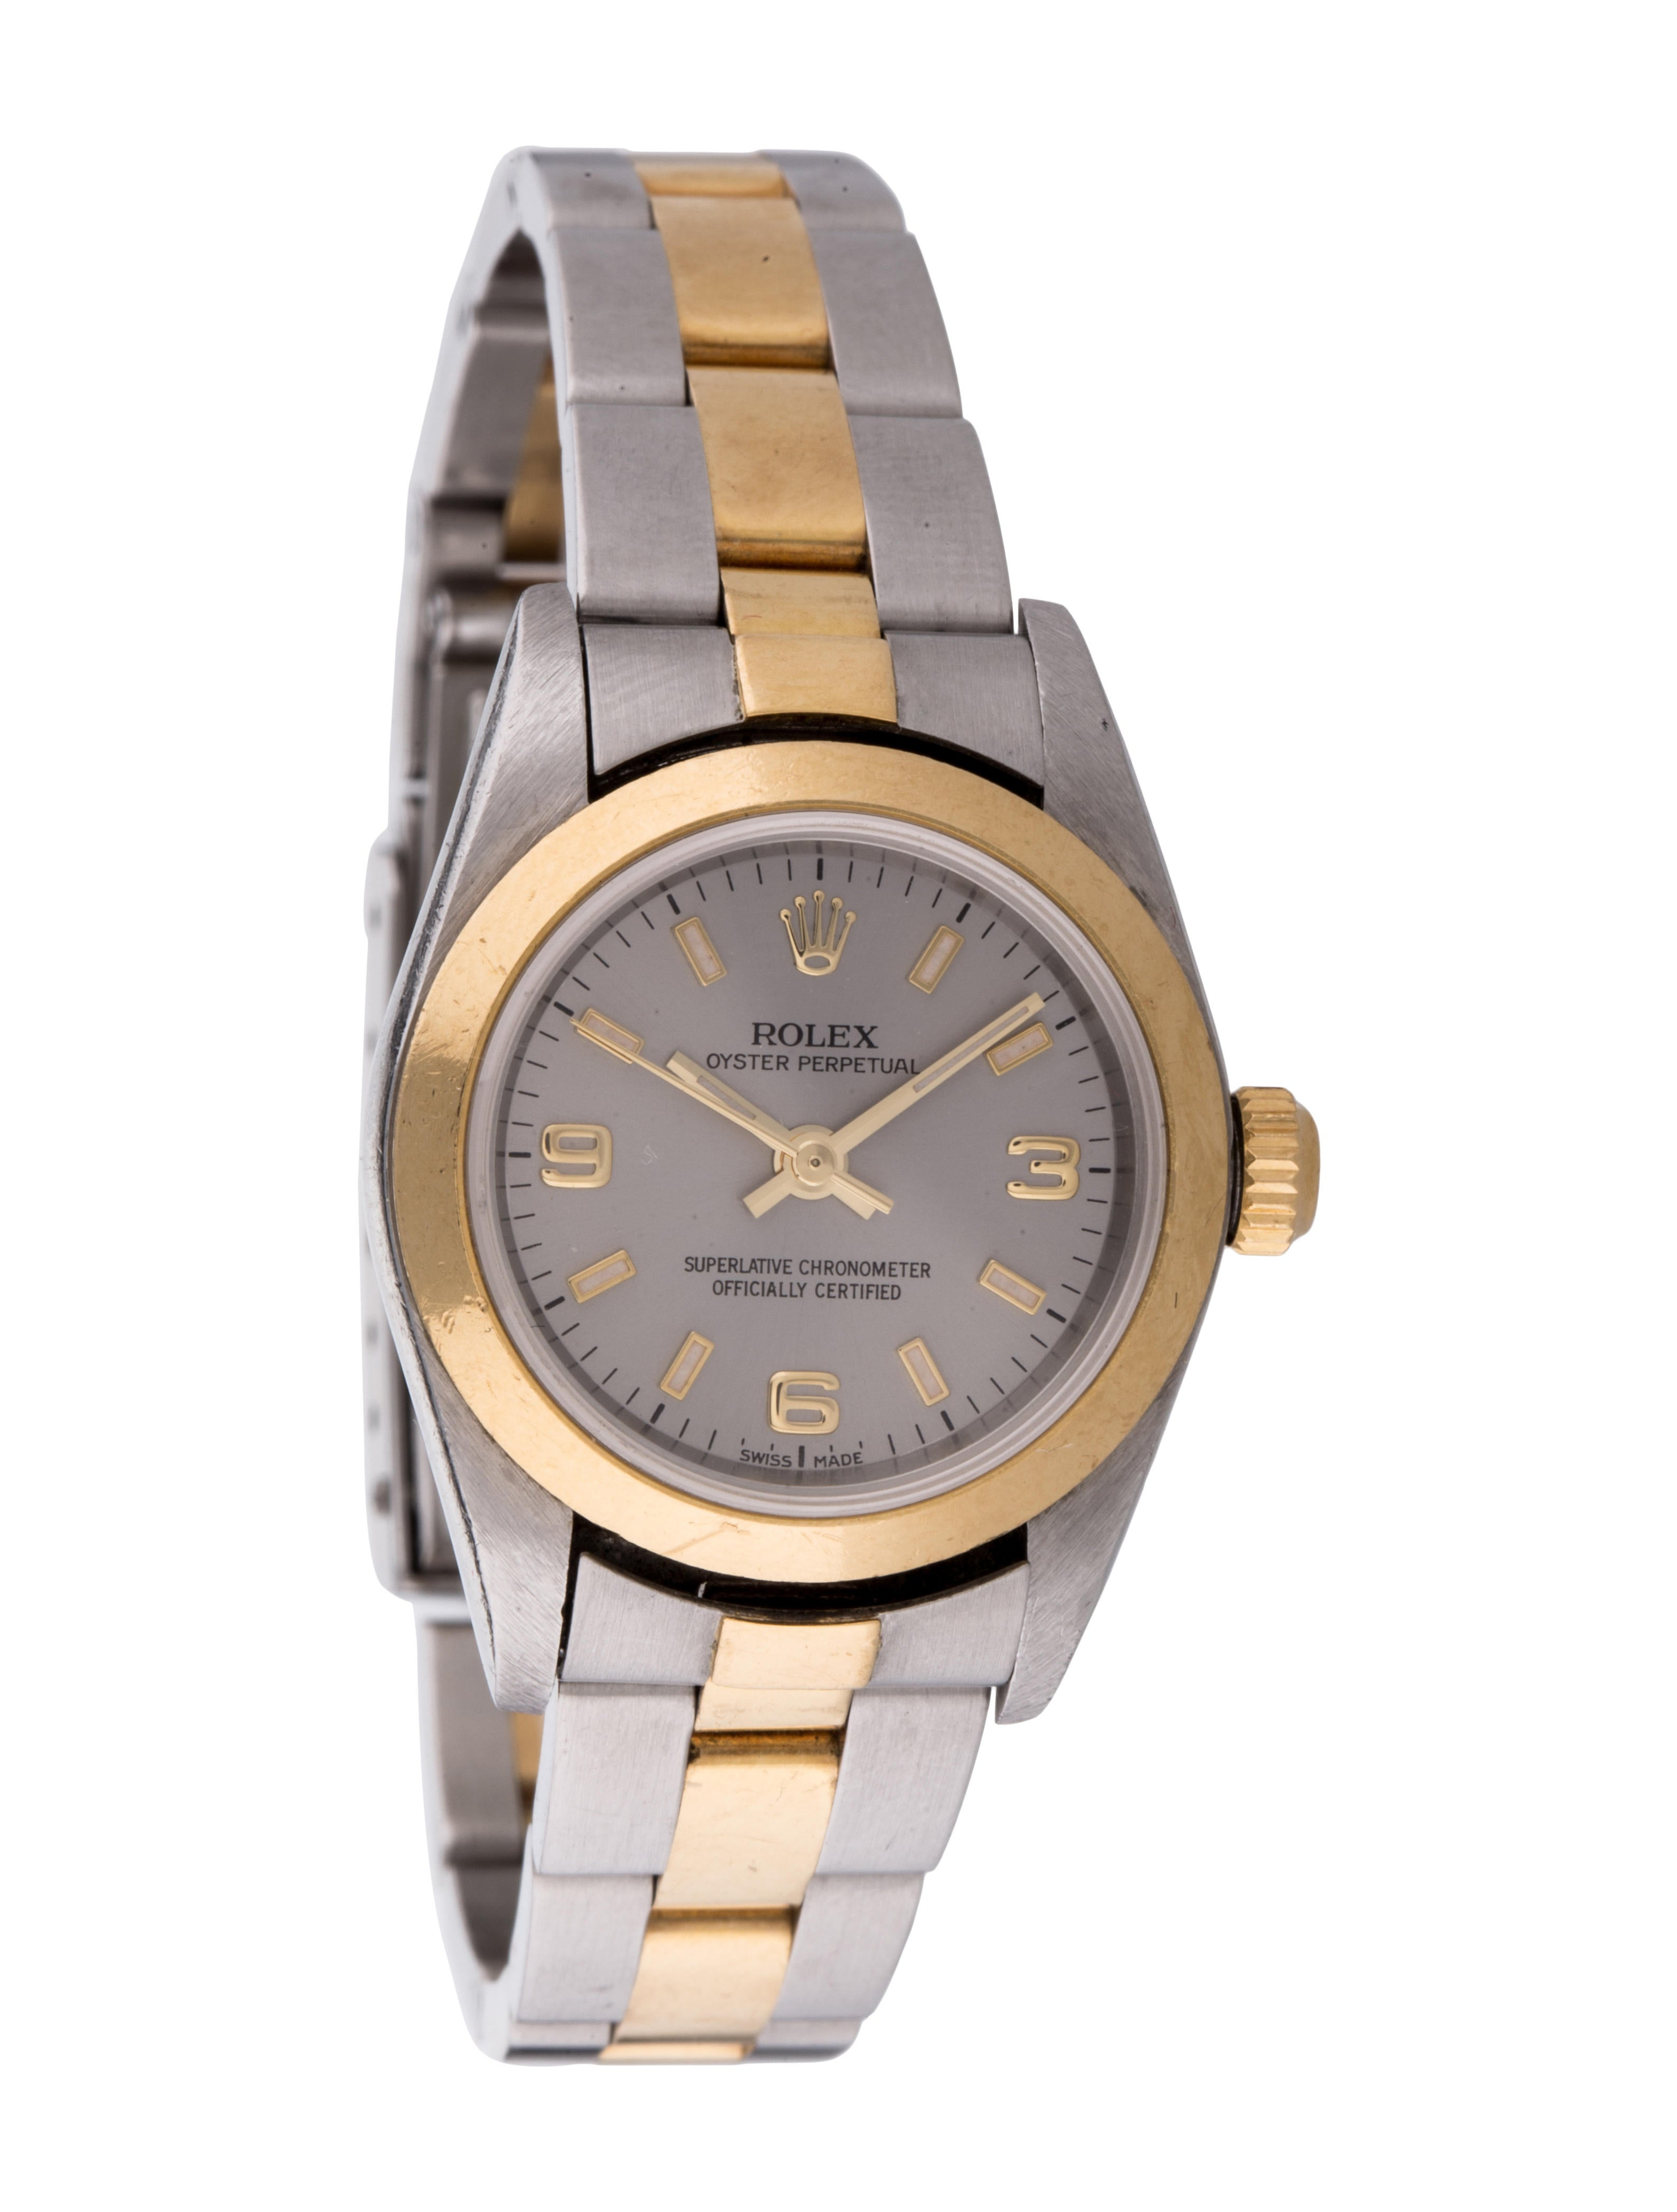 Rolex Lady Oyster Perpetual Watch 76183 Bracelet Rlx21326 The